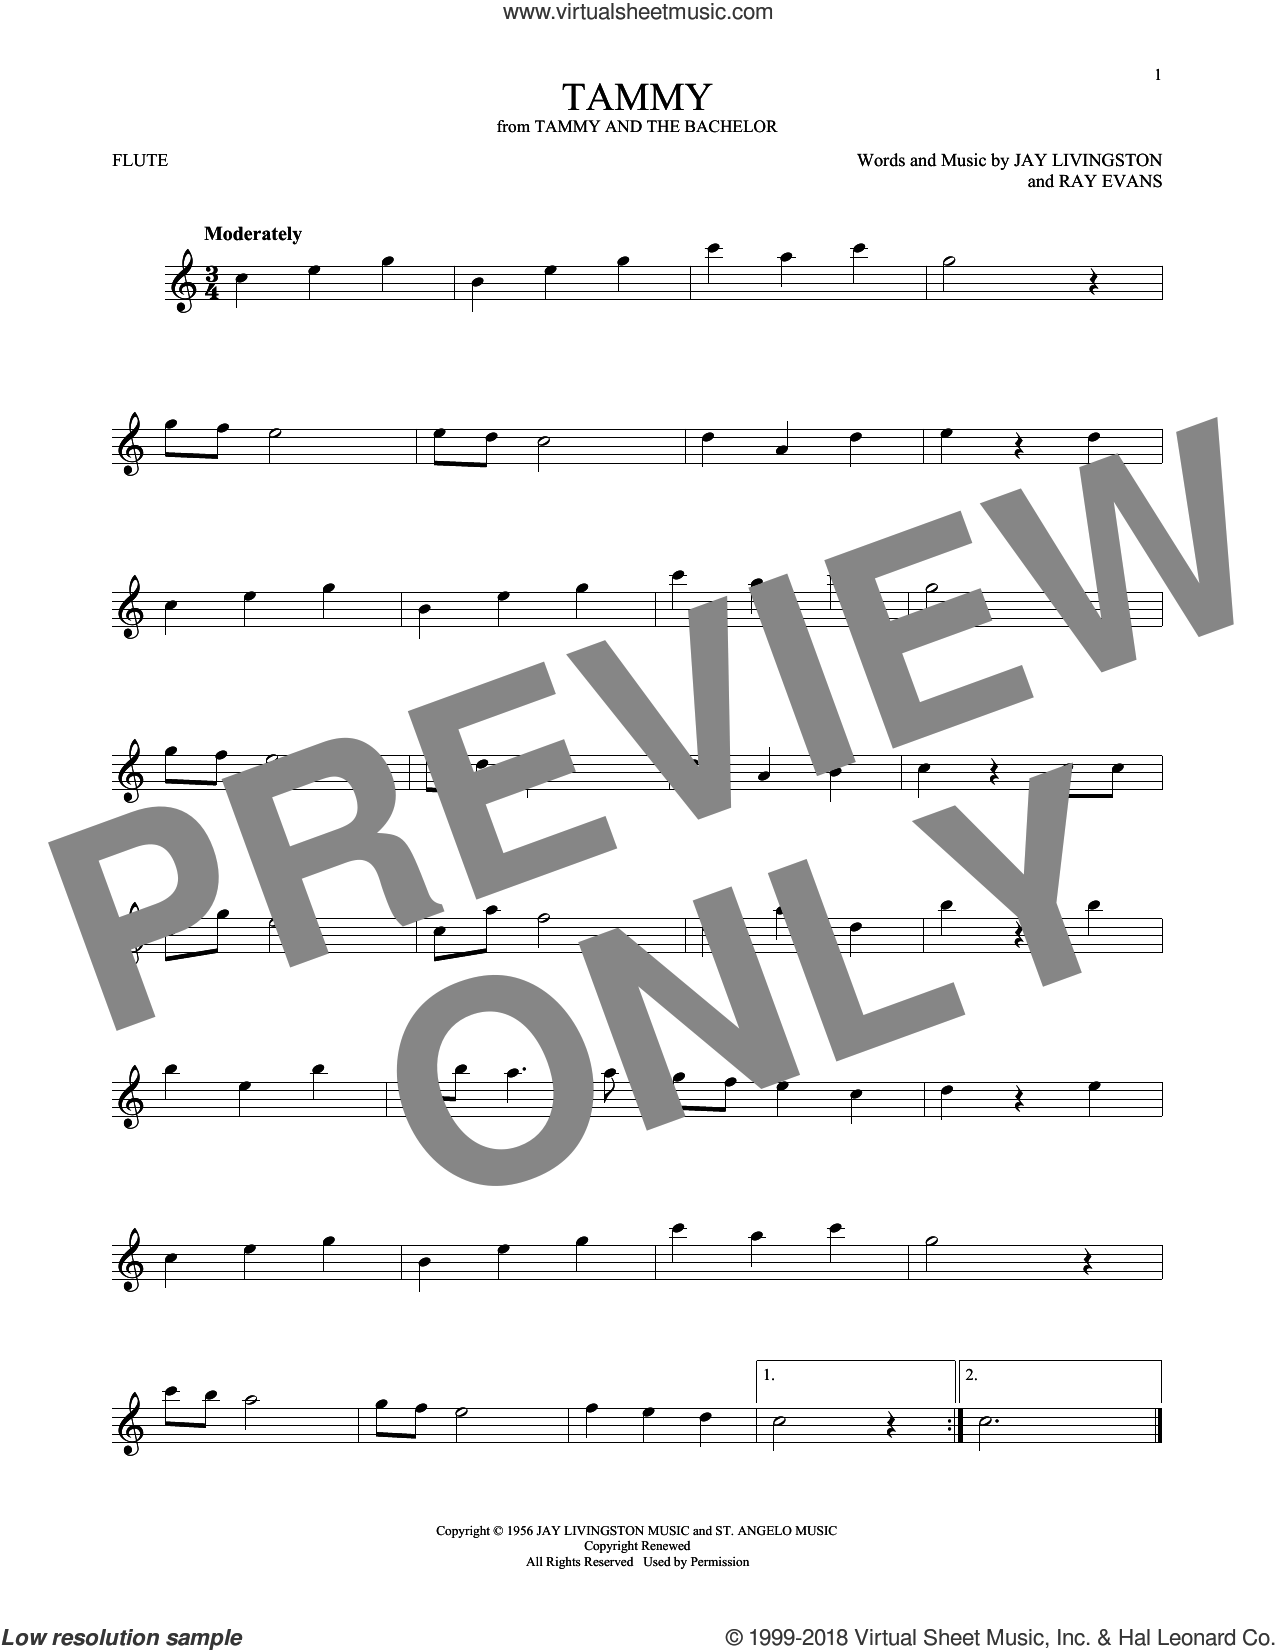 Tammy sheet music for flute solo by Debbie Reynolds, The Ames Brothers, Jay Livingston and Ray Evans, intermediate skill level